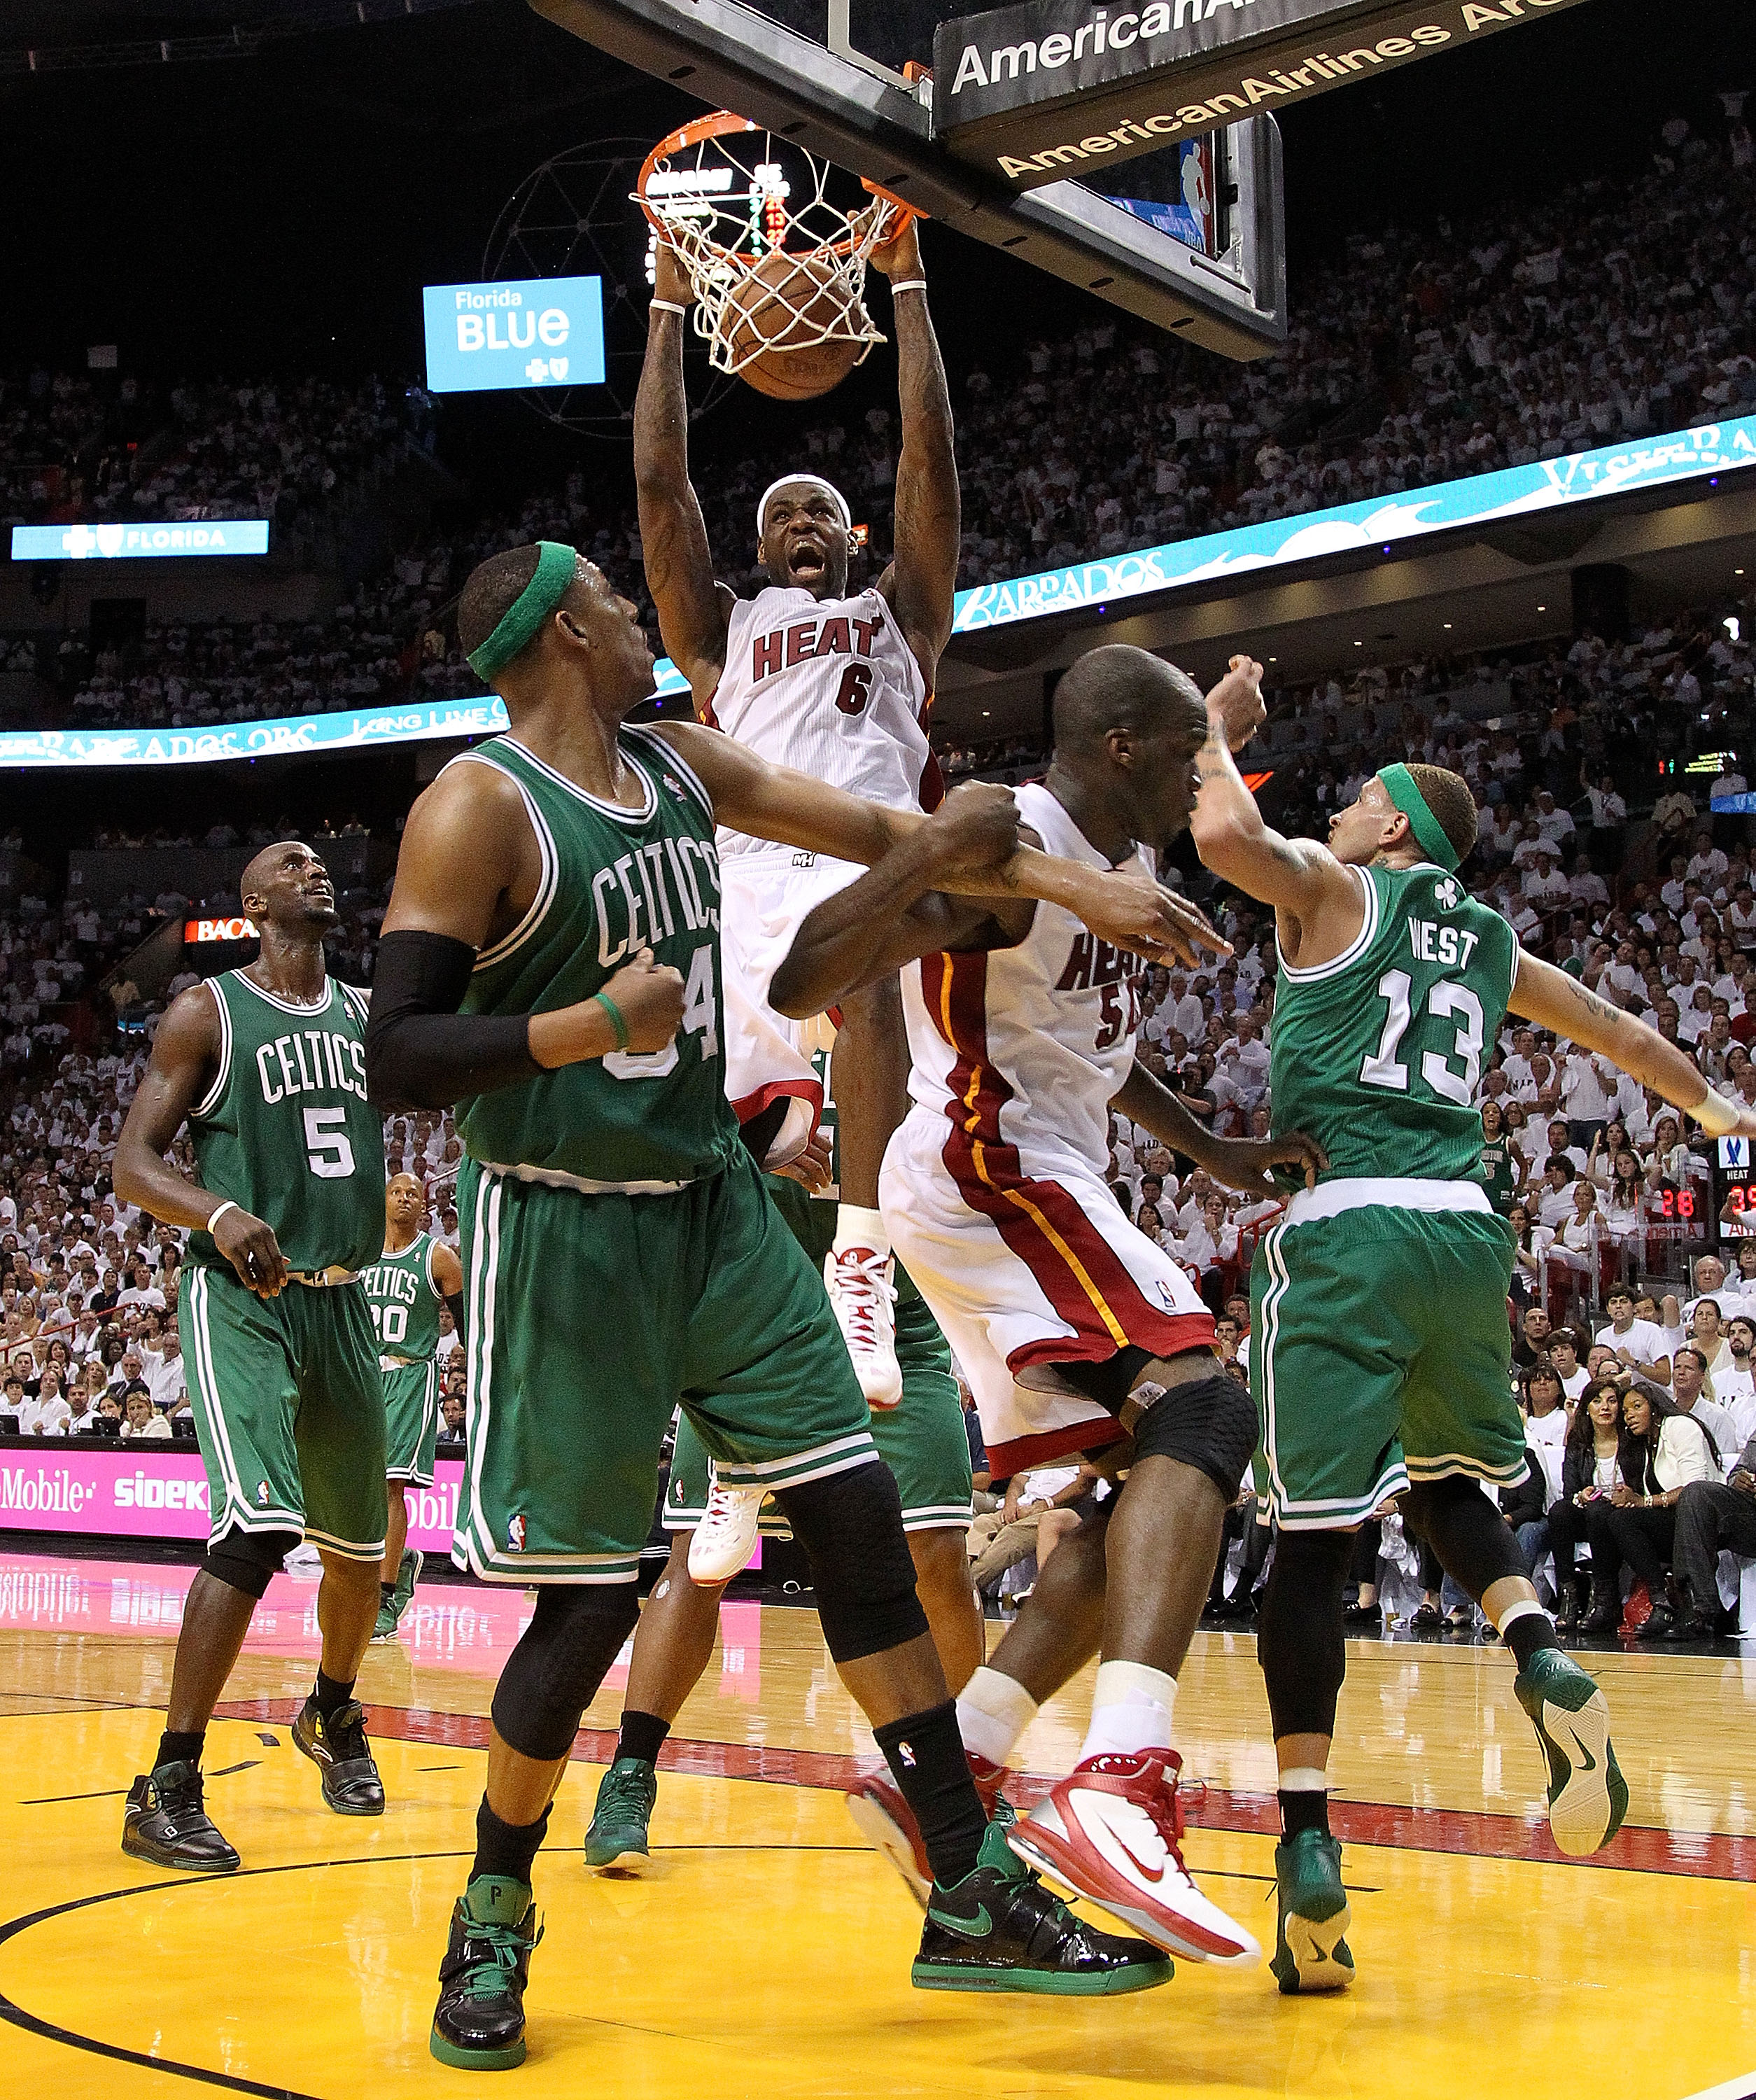 MIAMI, FL - MAY 03:  LeBron James #6 of the Miami Heat dunks over Paul Pierce #34 and Delonte West #13 of  the Boston Celtics during Game Two of the Eastern Conference Semifinals of the 2011 NBA Playoffs at American Airlines Arena on May 3, 2011 in Miami,